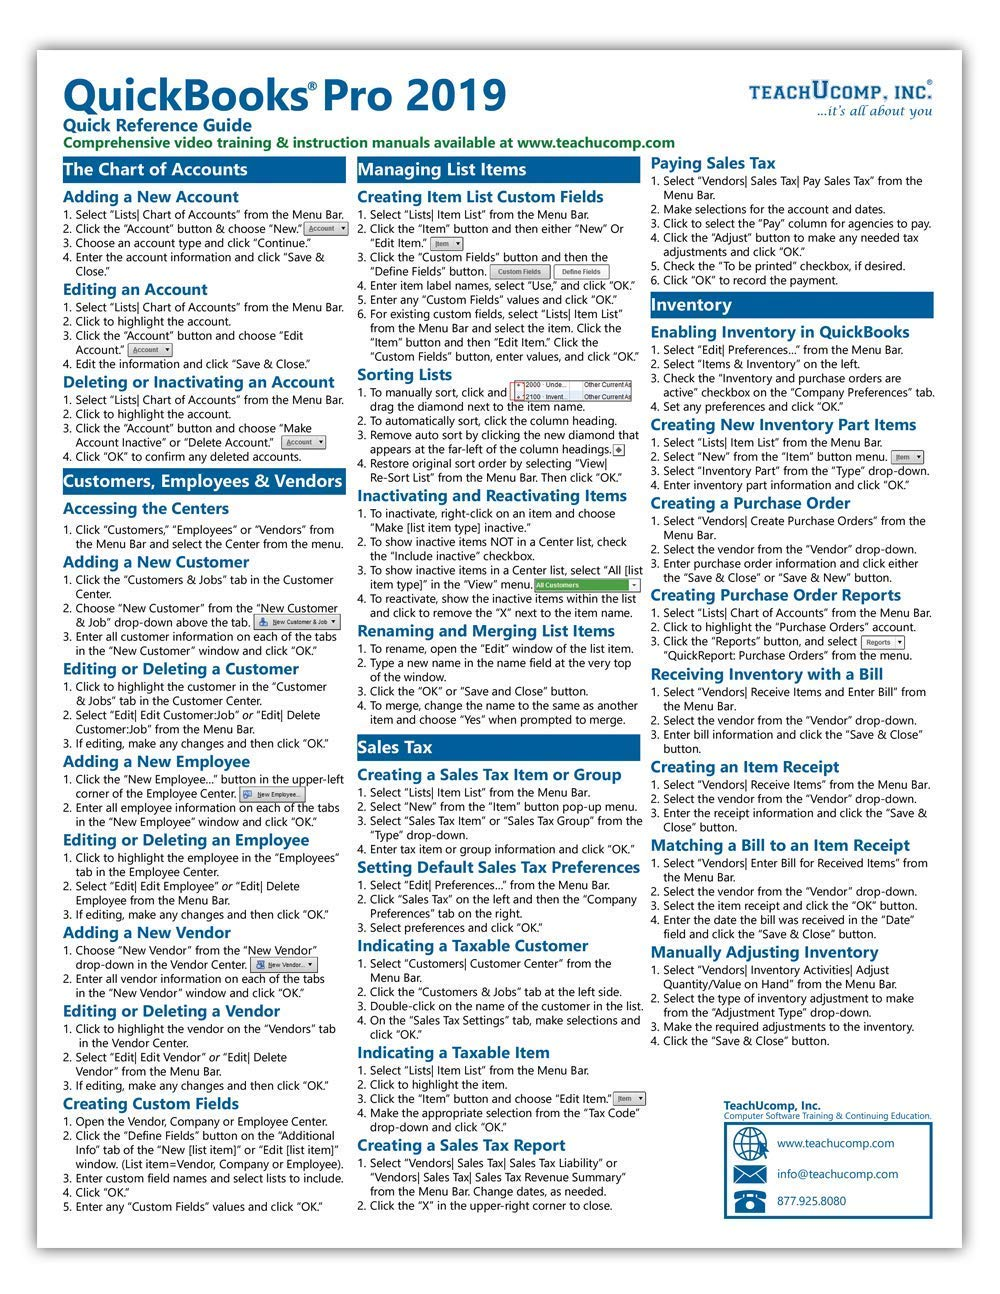 QuickBooks Pro 2019 Quick Reference Training Card